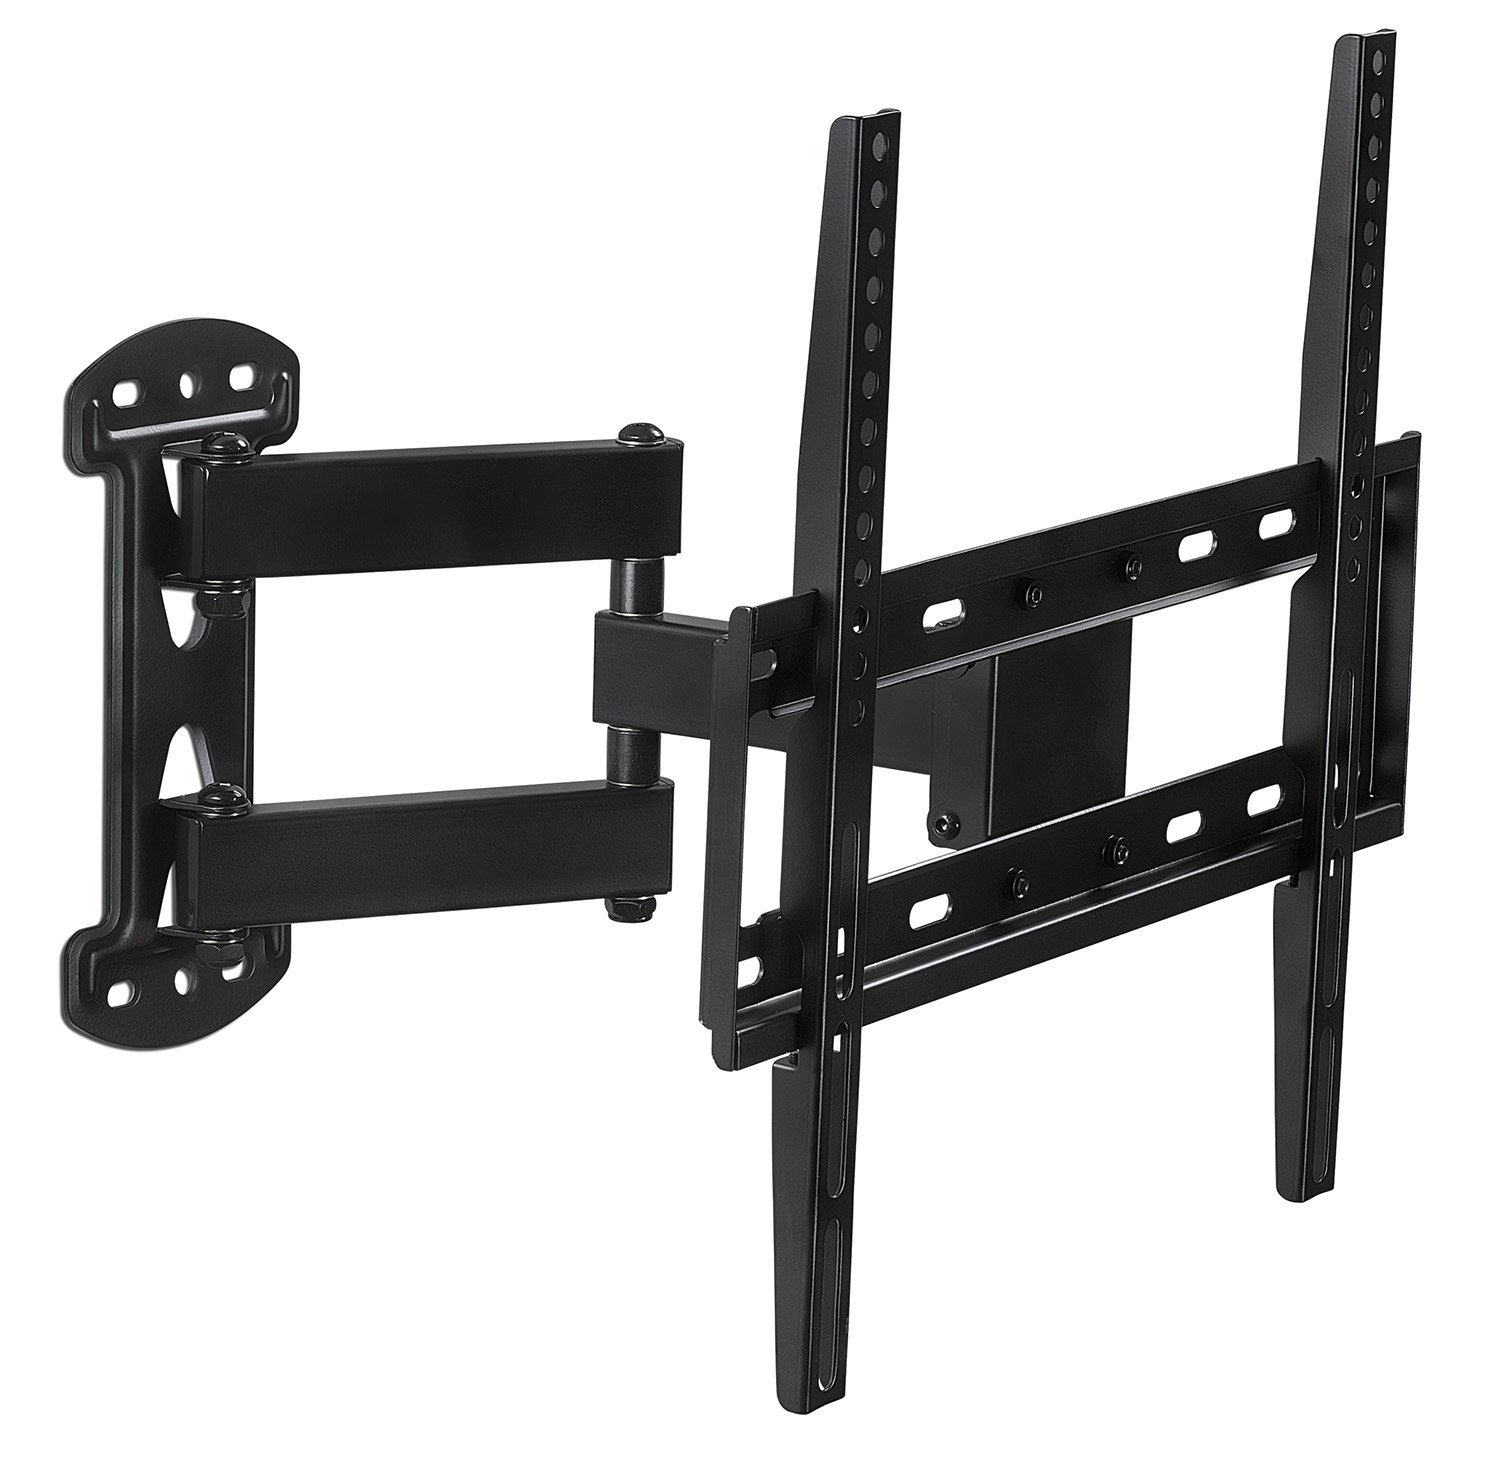 Best swivel tv wall mount cool tv stands walmart wall for Cool tv wall mounts